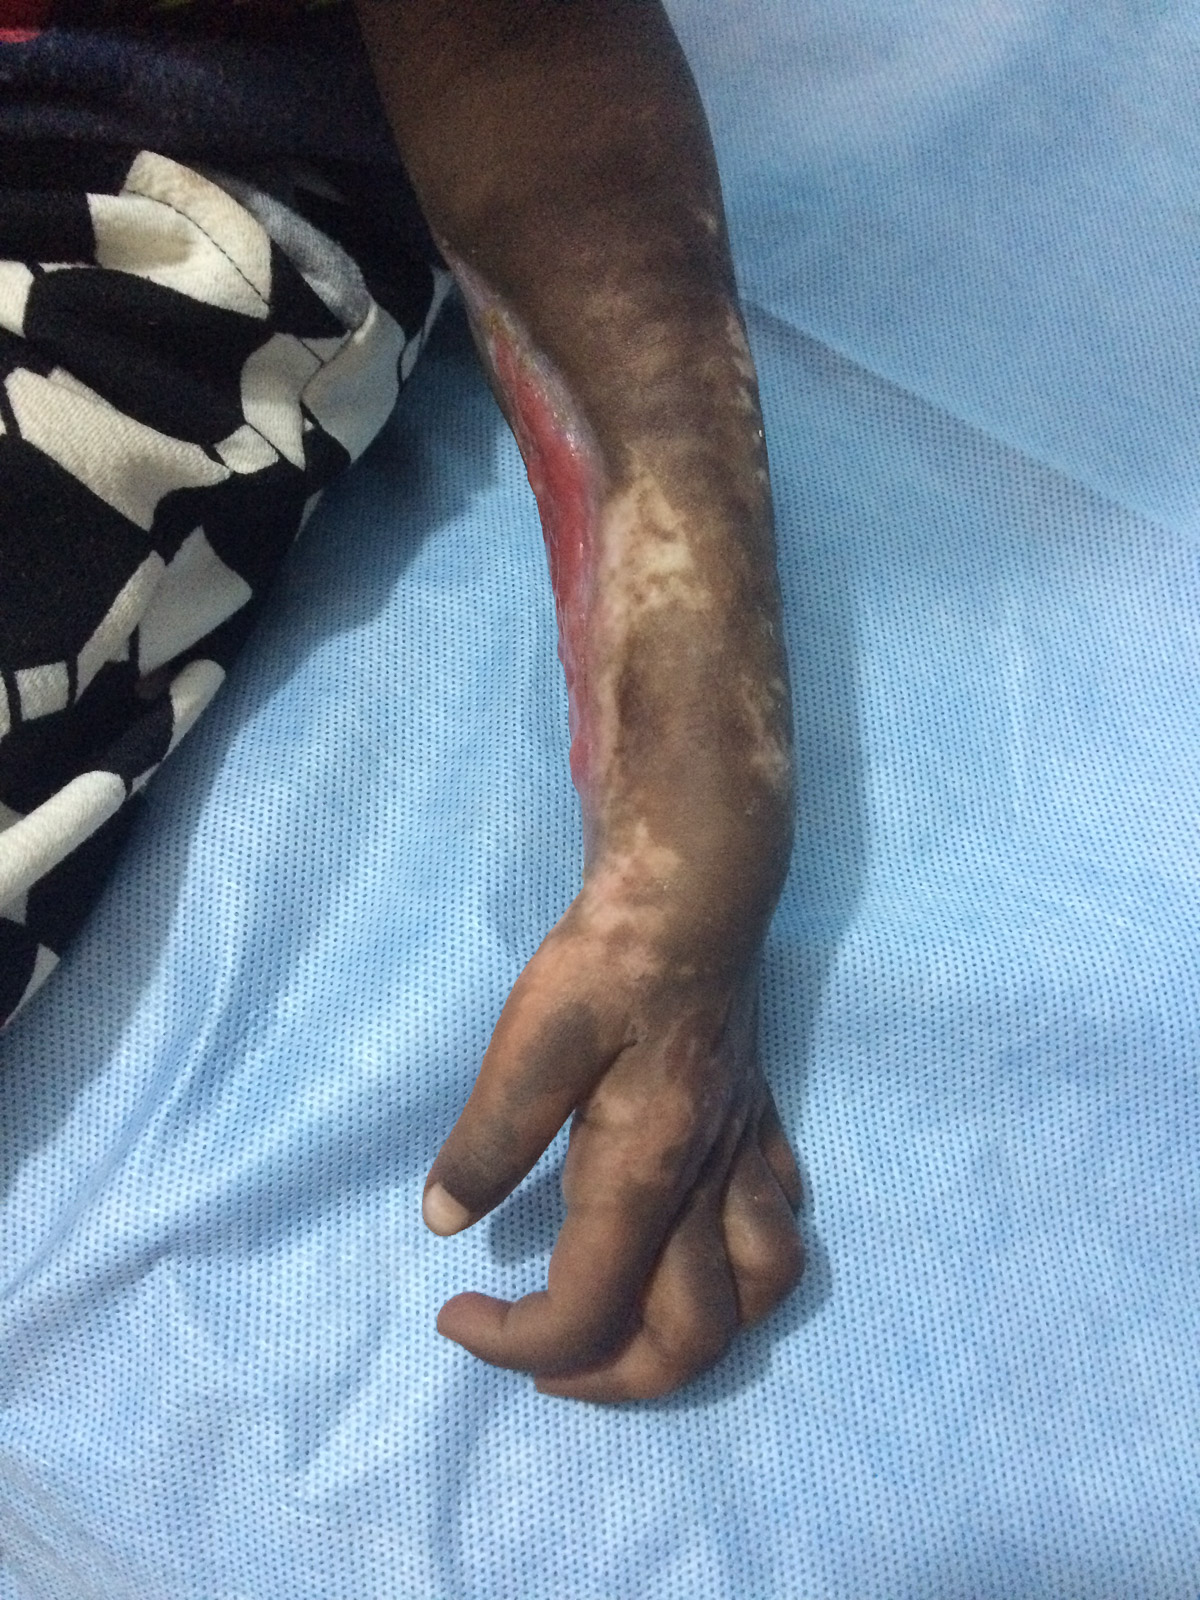 Fasciotomy to Save a Limb with Compartment Syndrome - The ...